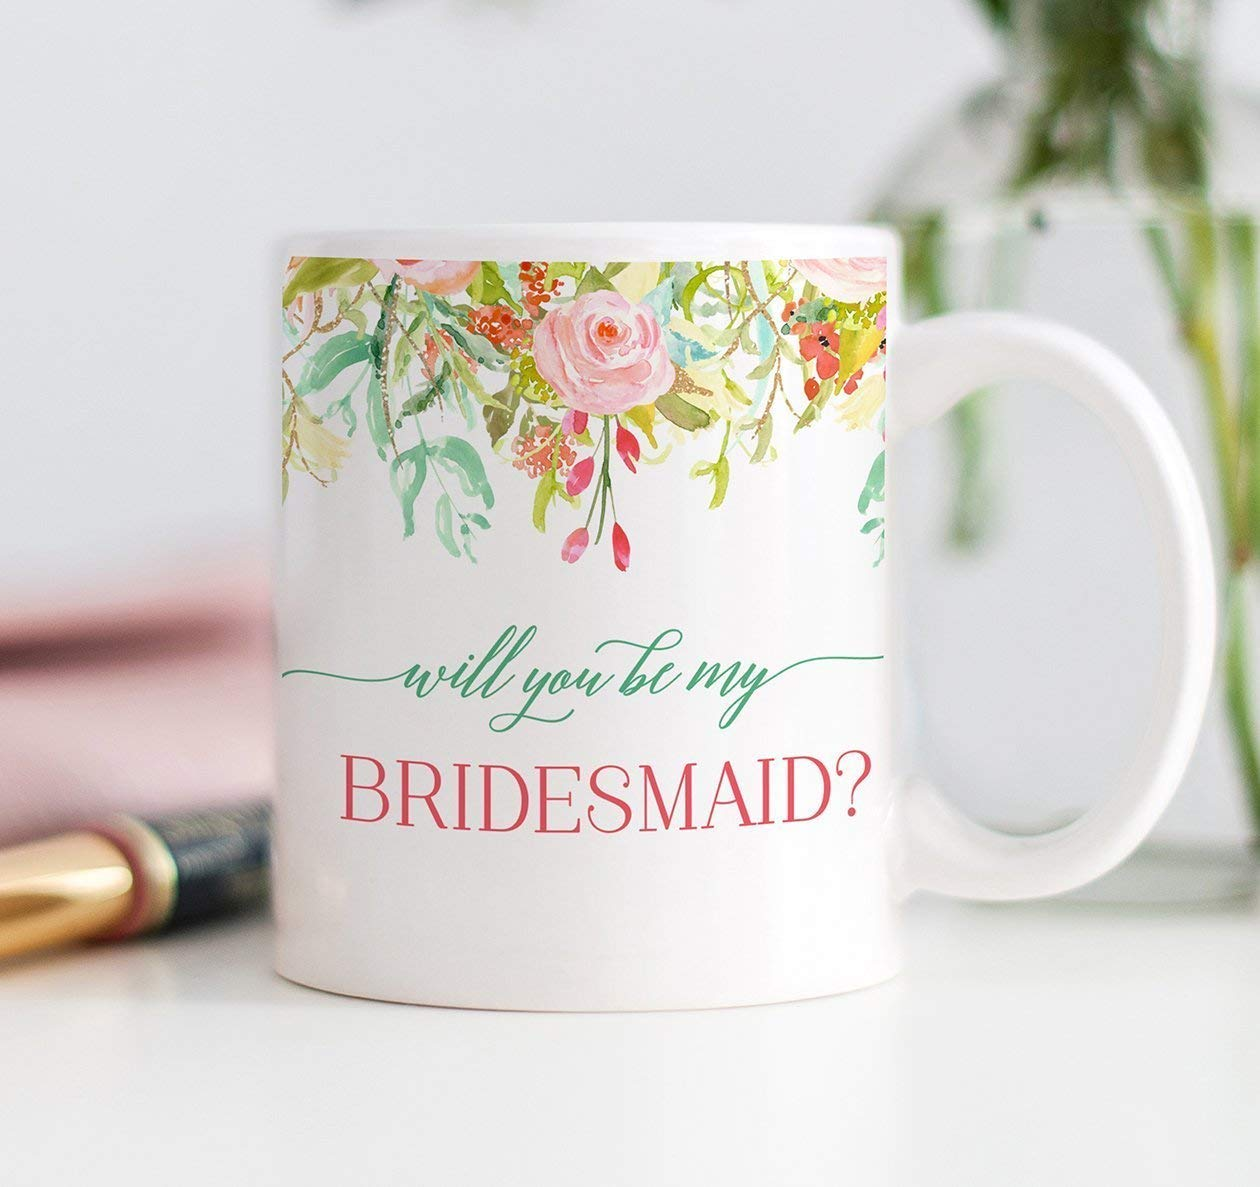 Gift Idea Asking Sister Best Girlfriends Bridal Wedding Party Elegant Pink Mint Flowers 11oz Ceramic Tea Cup by Digibuddha DM0106 Pretty Floral Bride Proposal Coffee Mug Will You Be My Bridesmaid